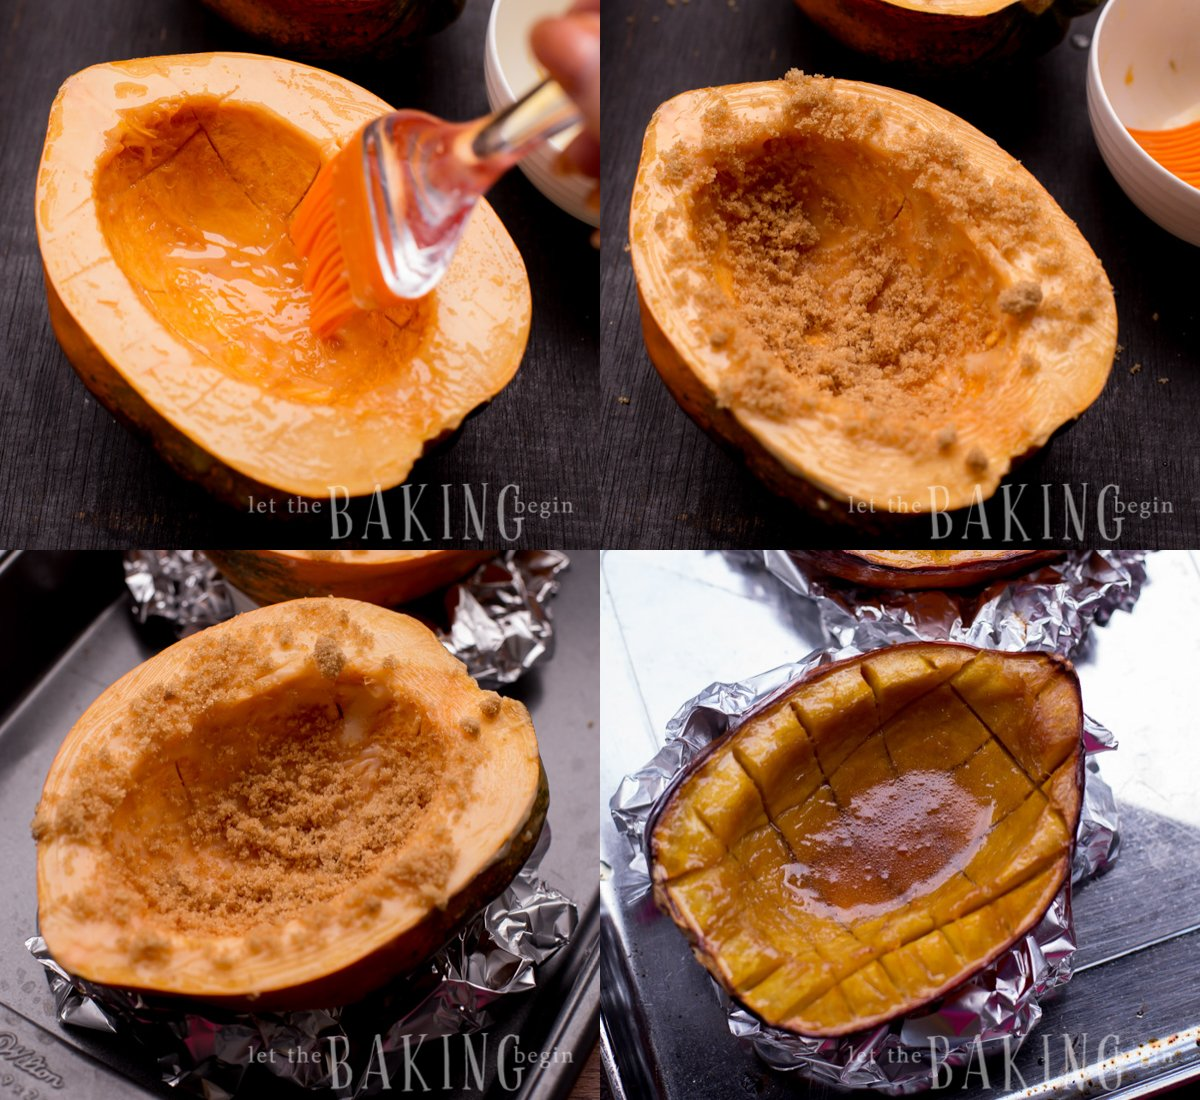 Brushing halves of Acorn Squash with melted butter and sprinkling with brown sugar.